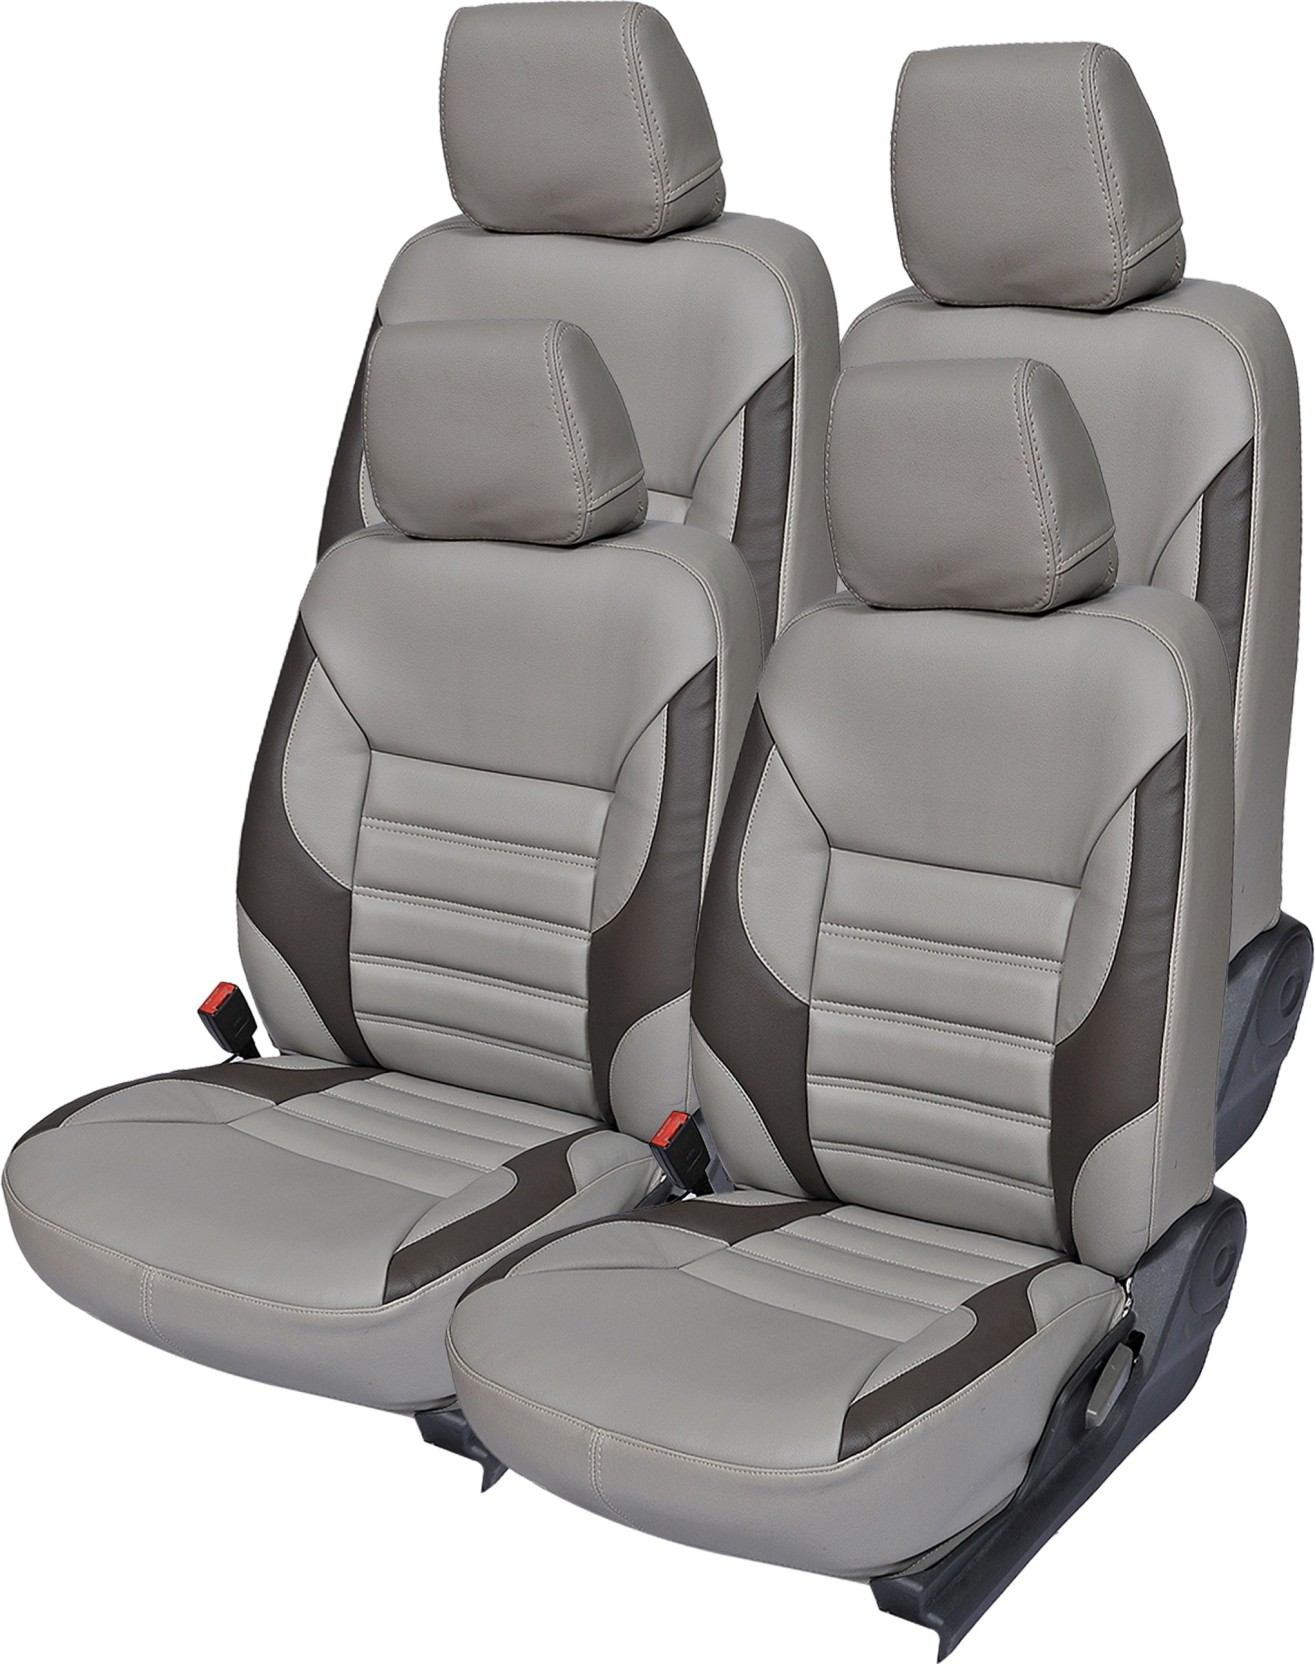 Gaadikart Leatherette Car Seat Cover For Ford Ecosport